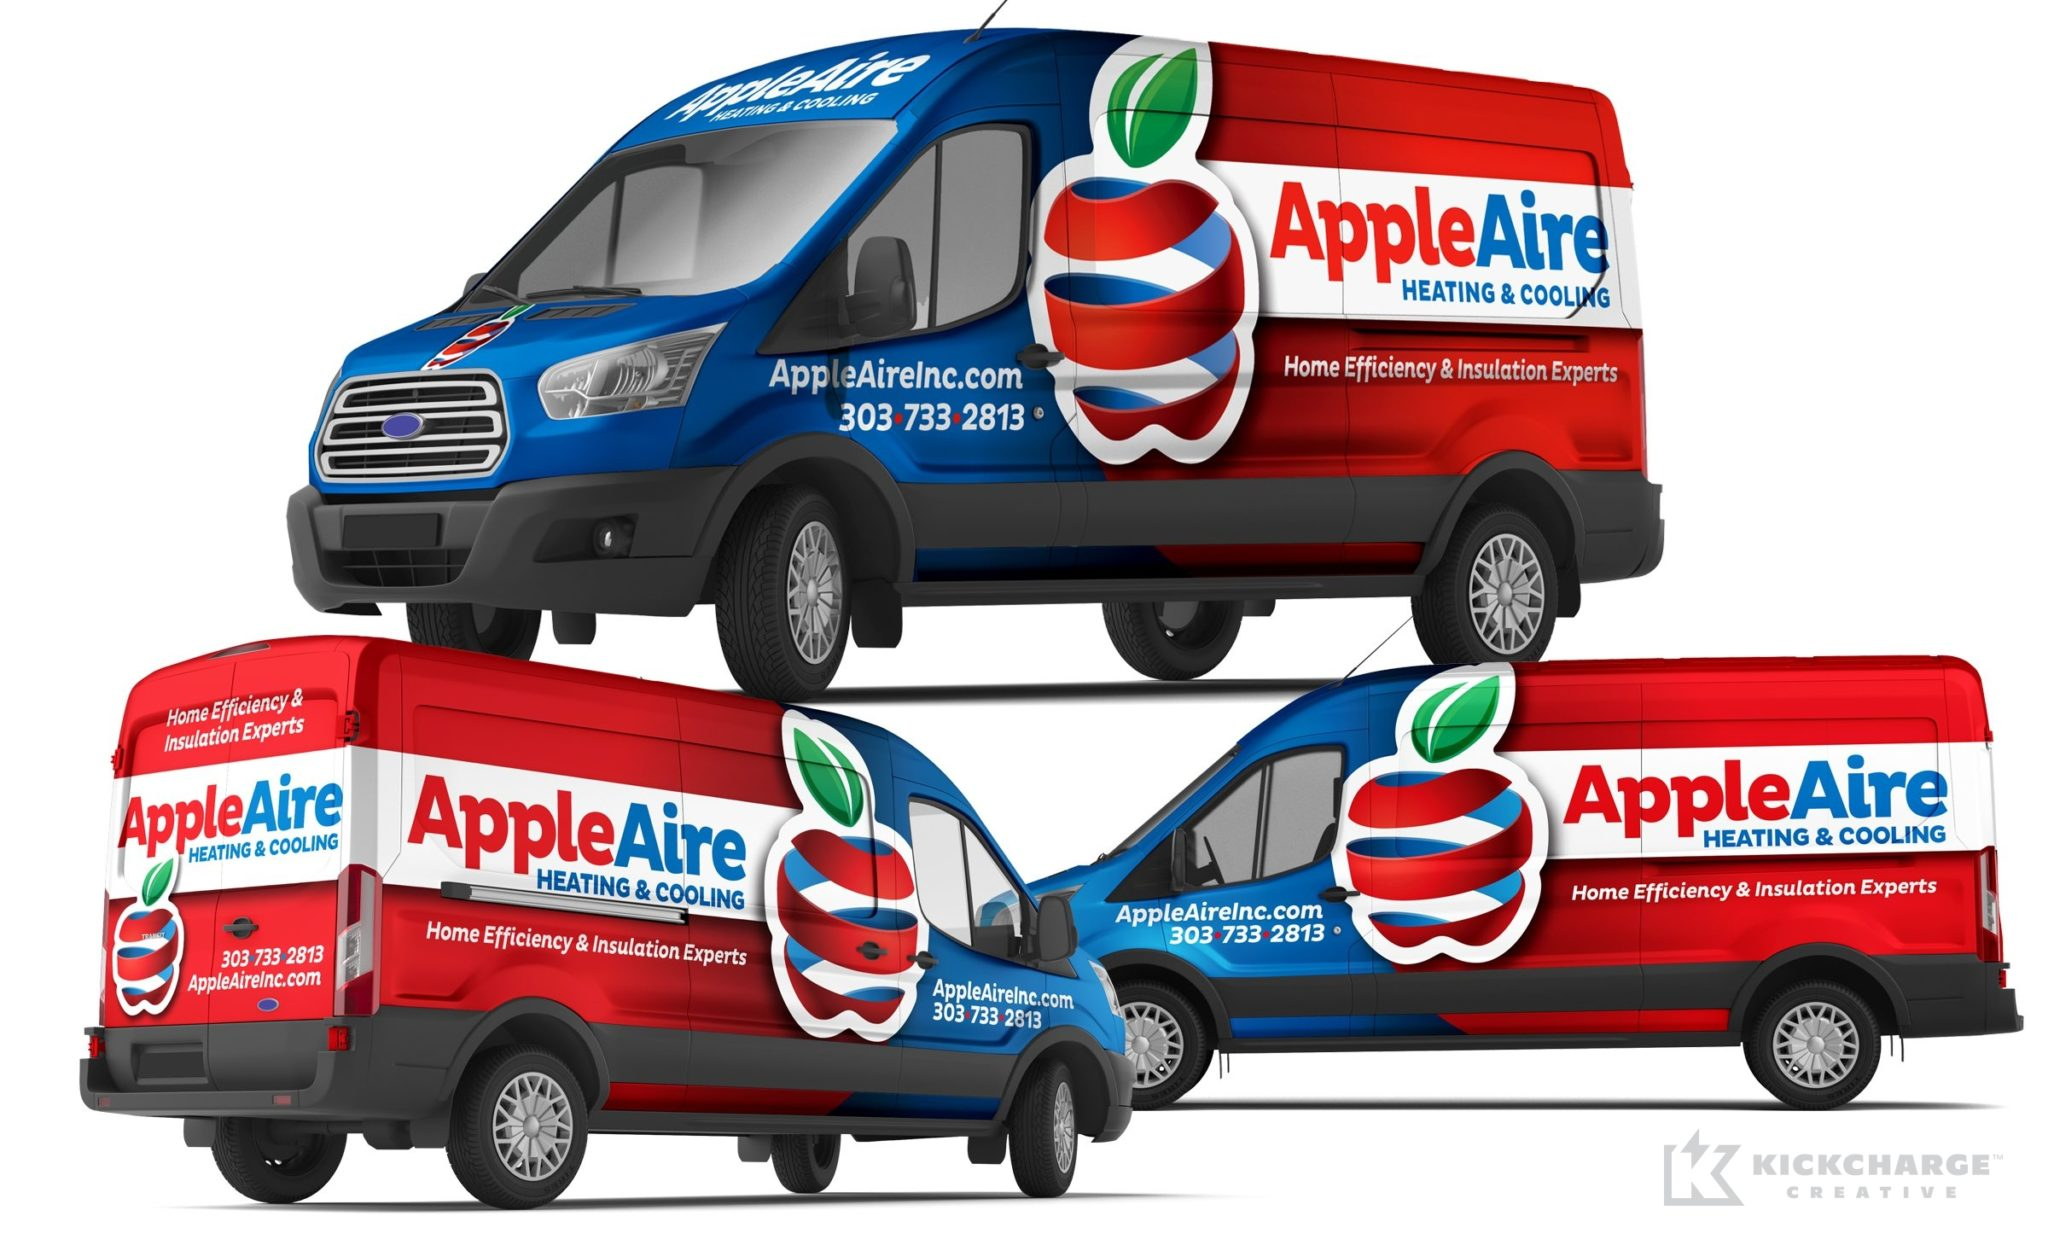 Vehicle wrap design for AppleAire Heating & Cooling.